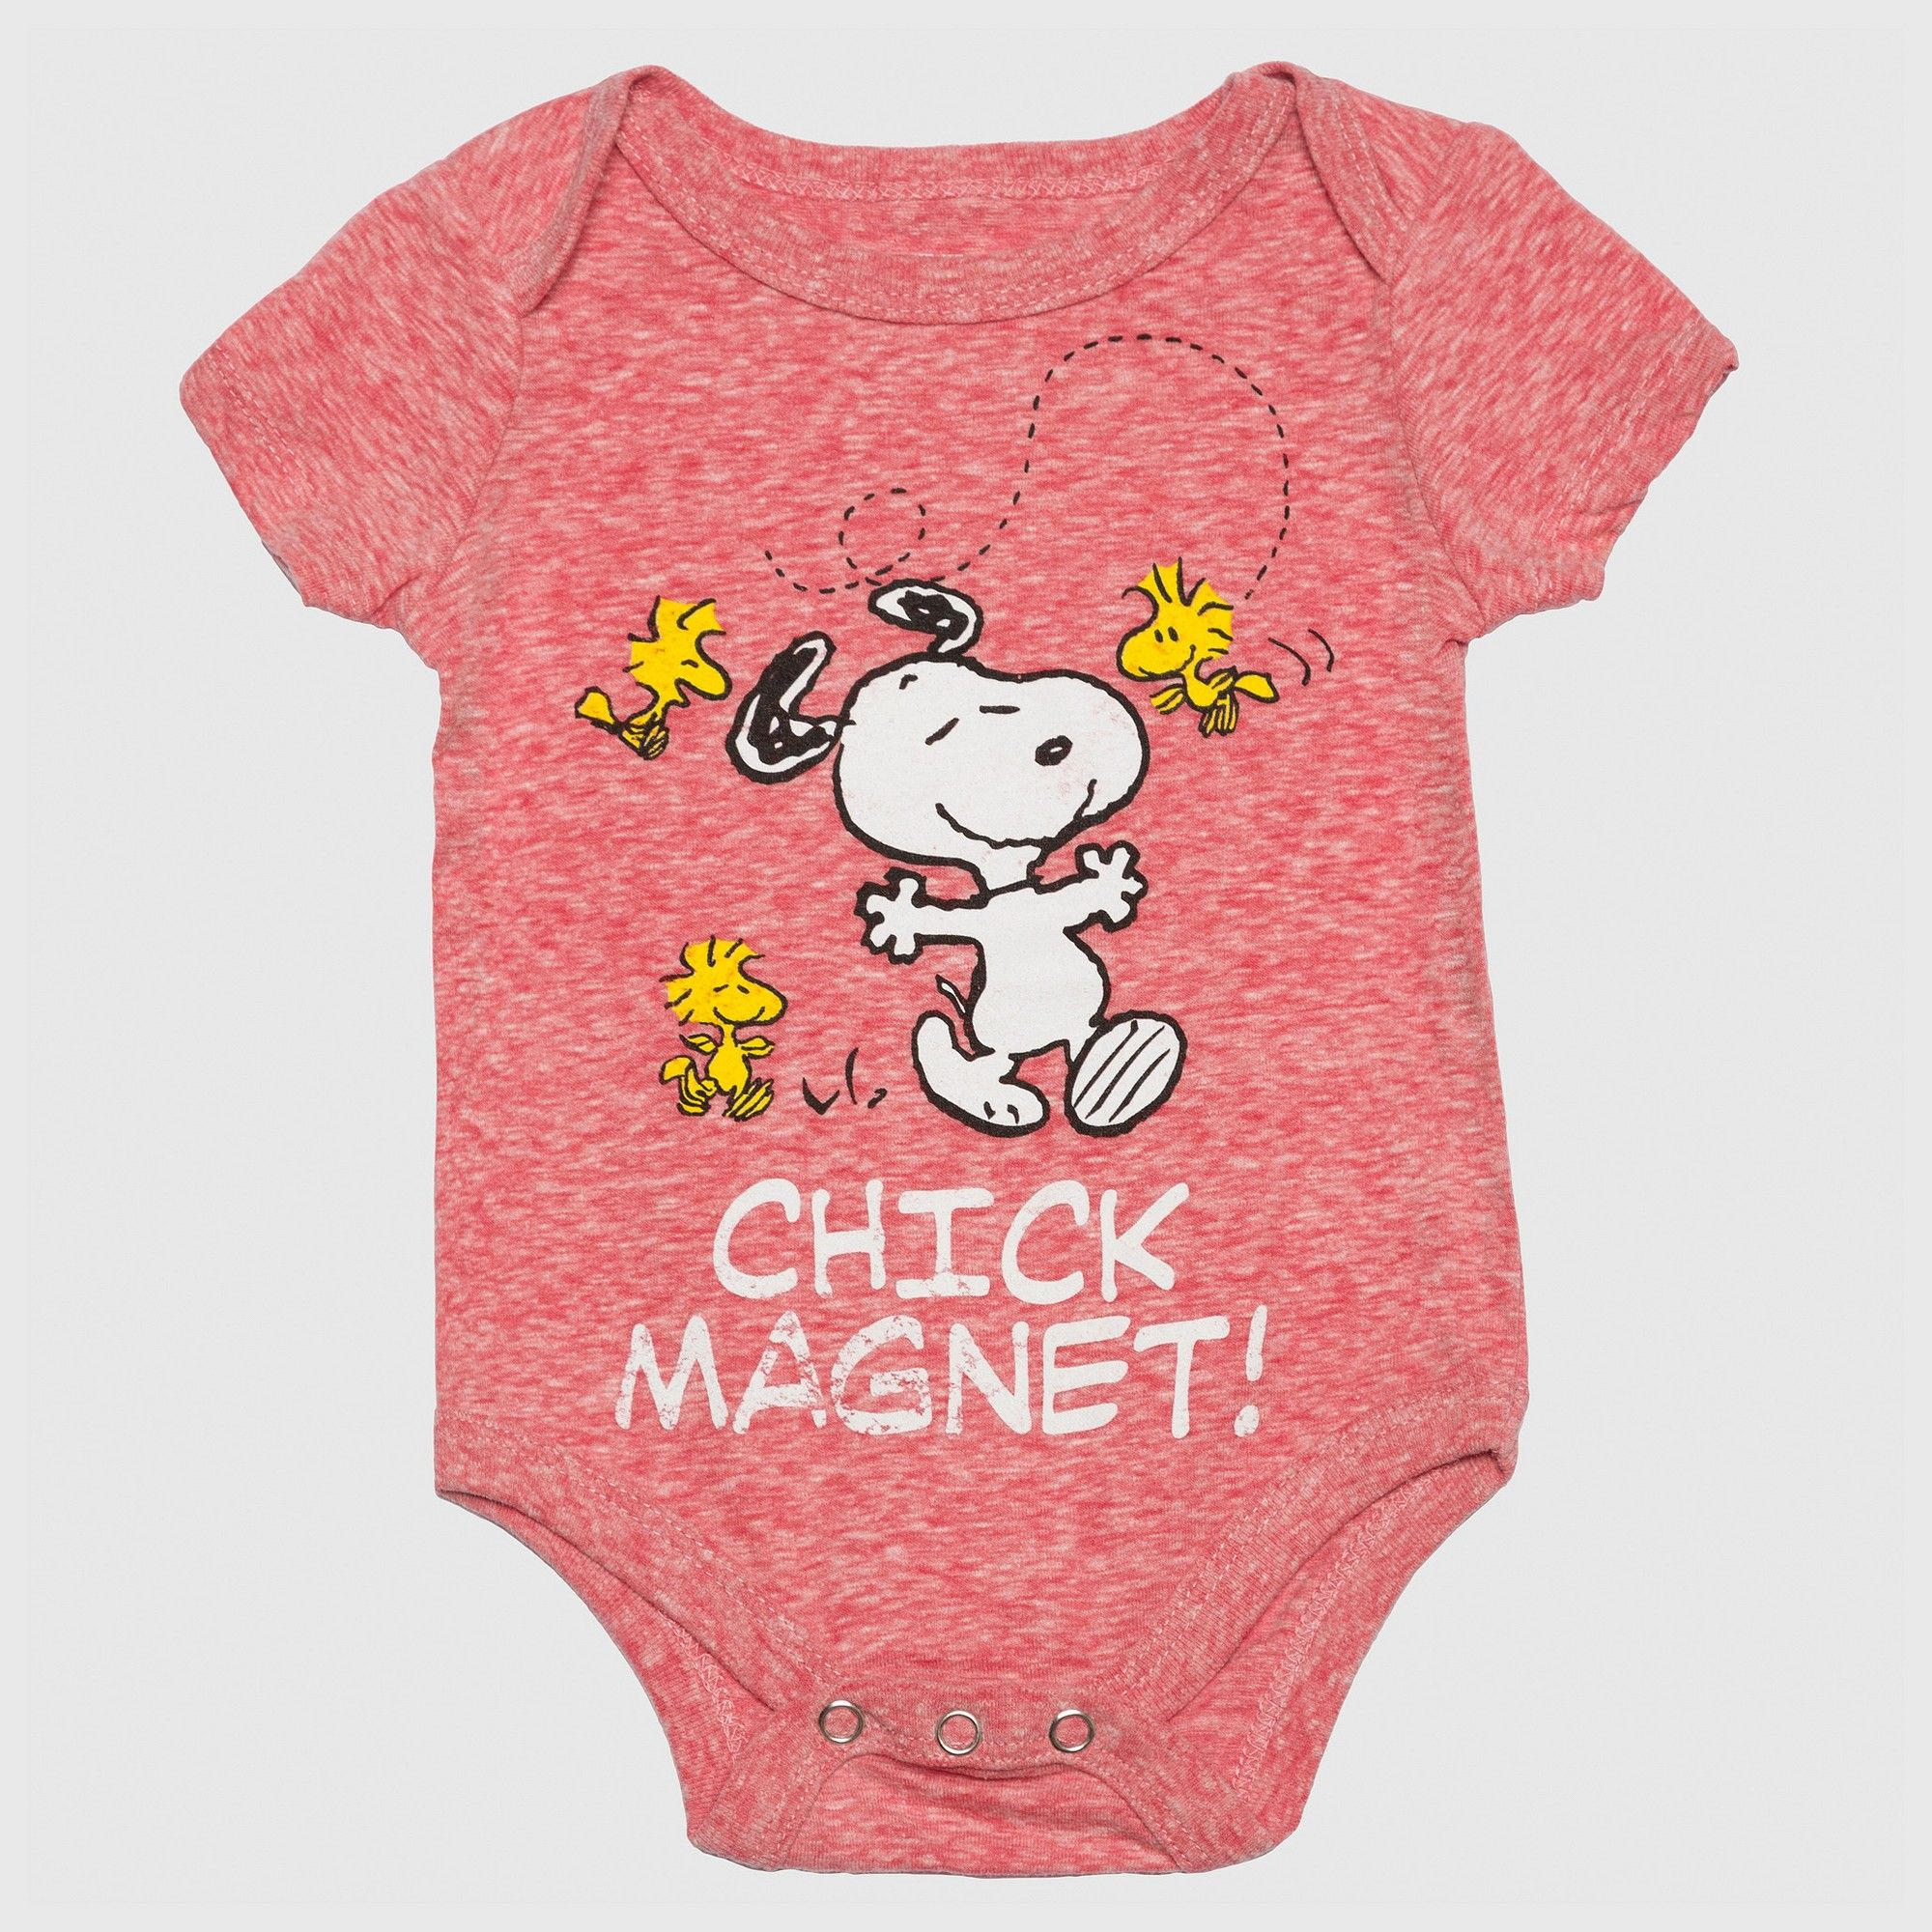 Peanuts Baby Boys Chick Magnet esie Red 3 6M Size 3 6 M